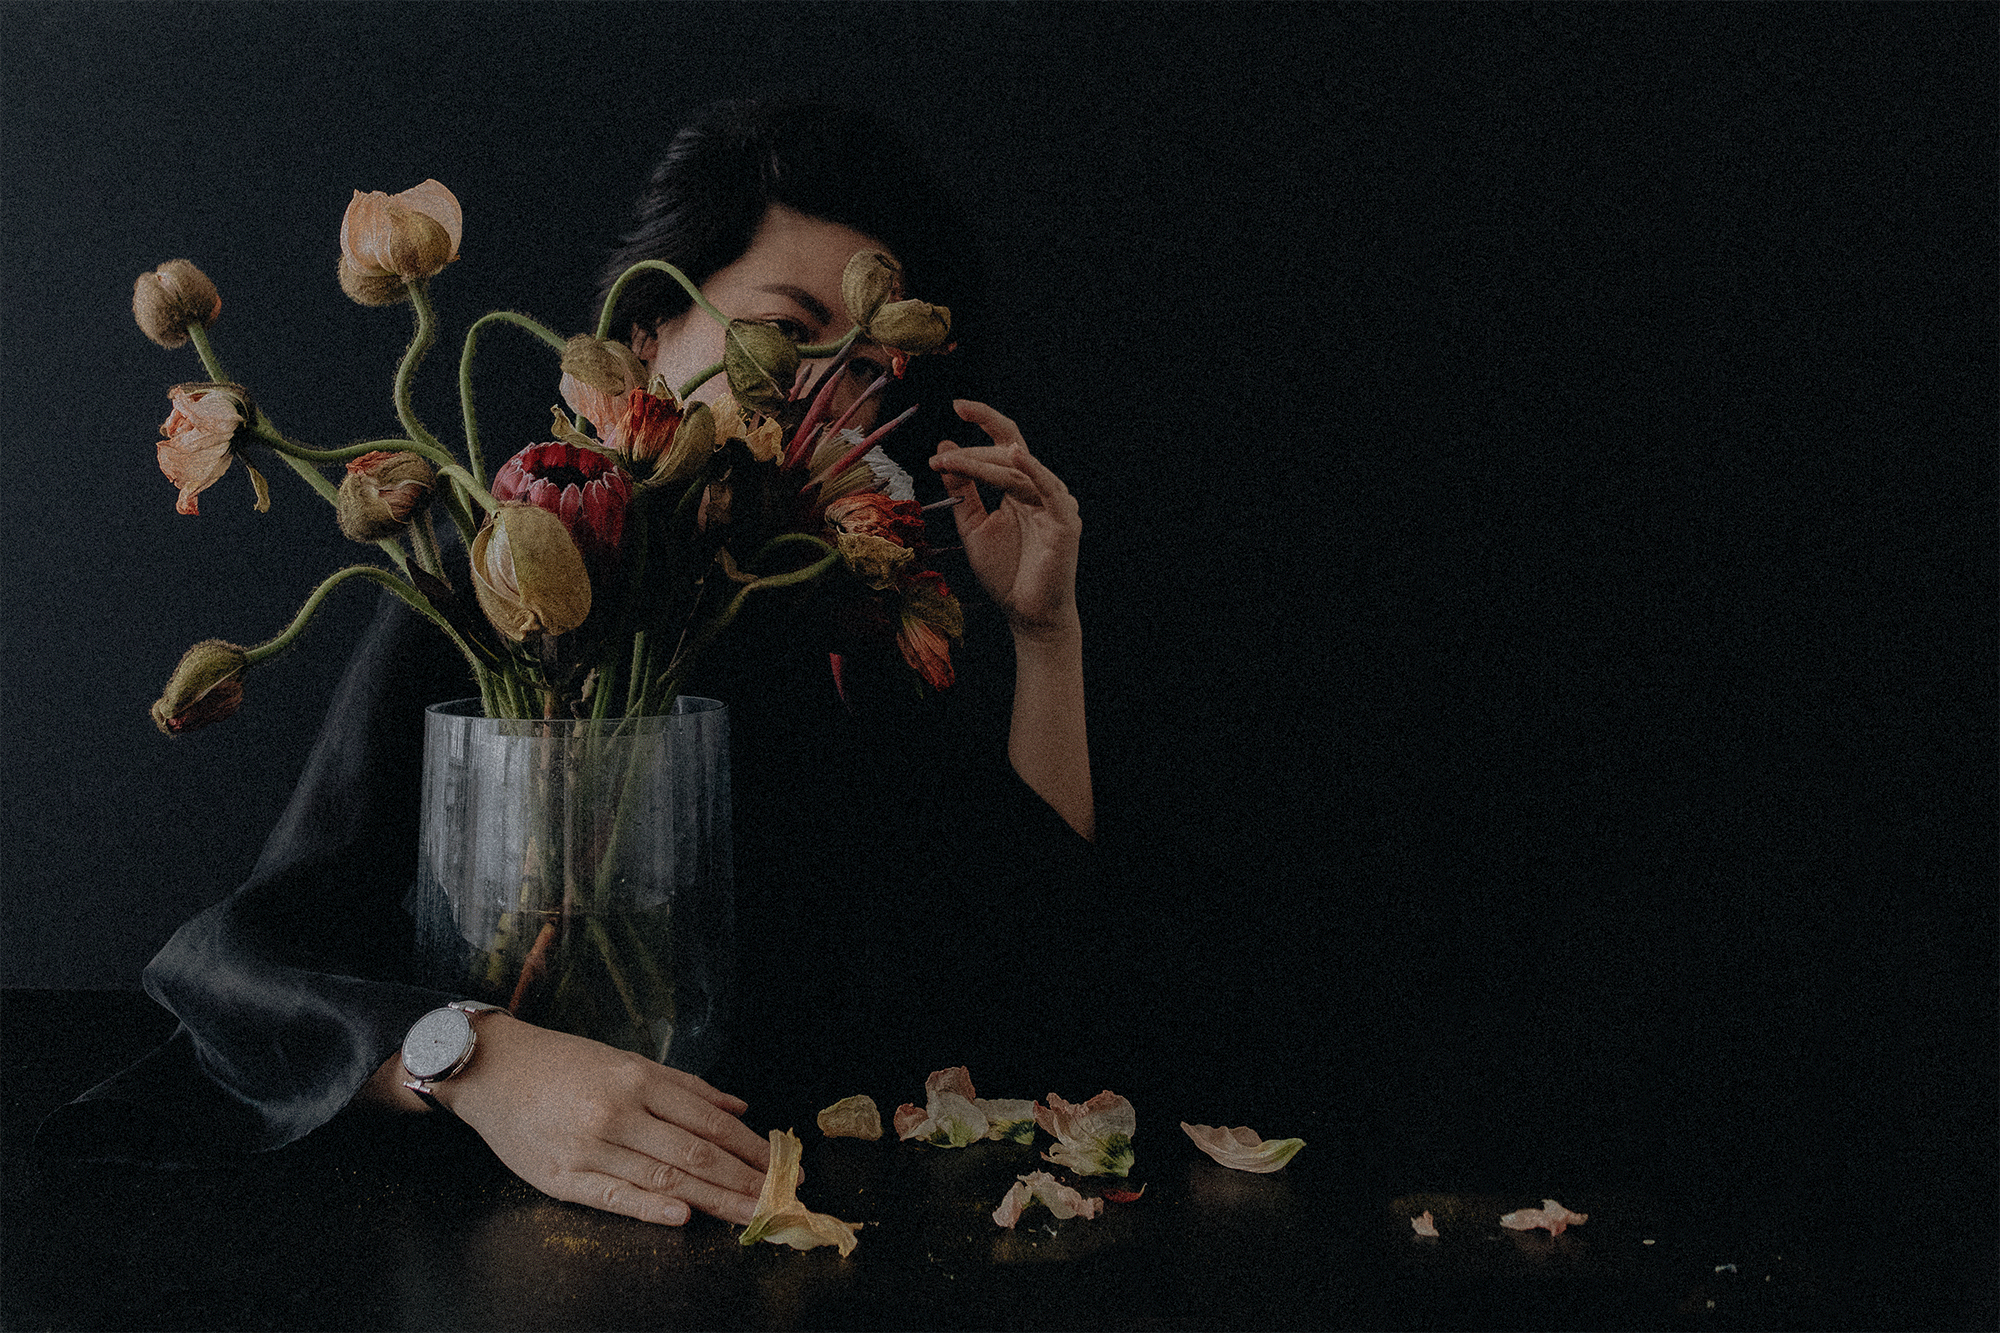 Wilting Flowers Editorial by Alice M. Huynh / iHeartAlice.com - Travel, Lifestyle & Fashionblog